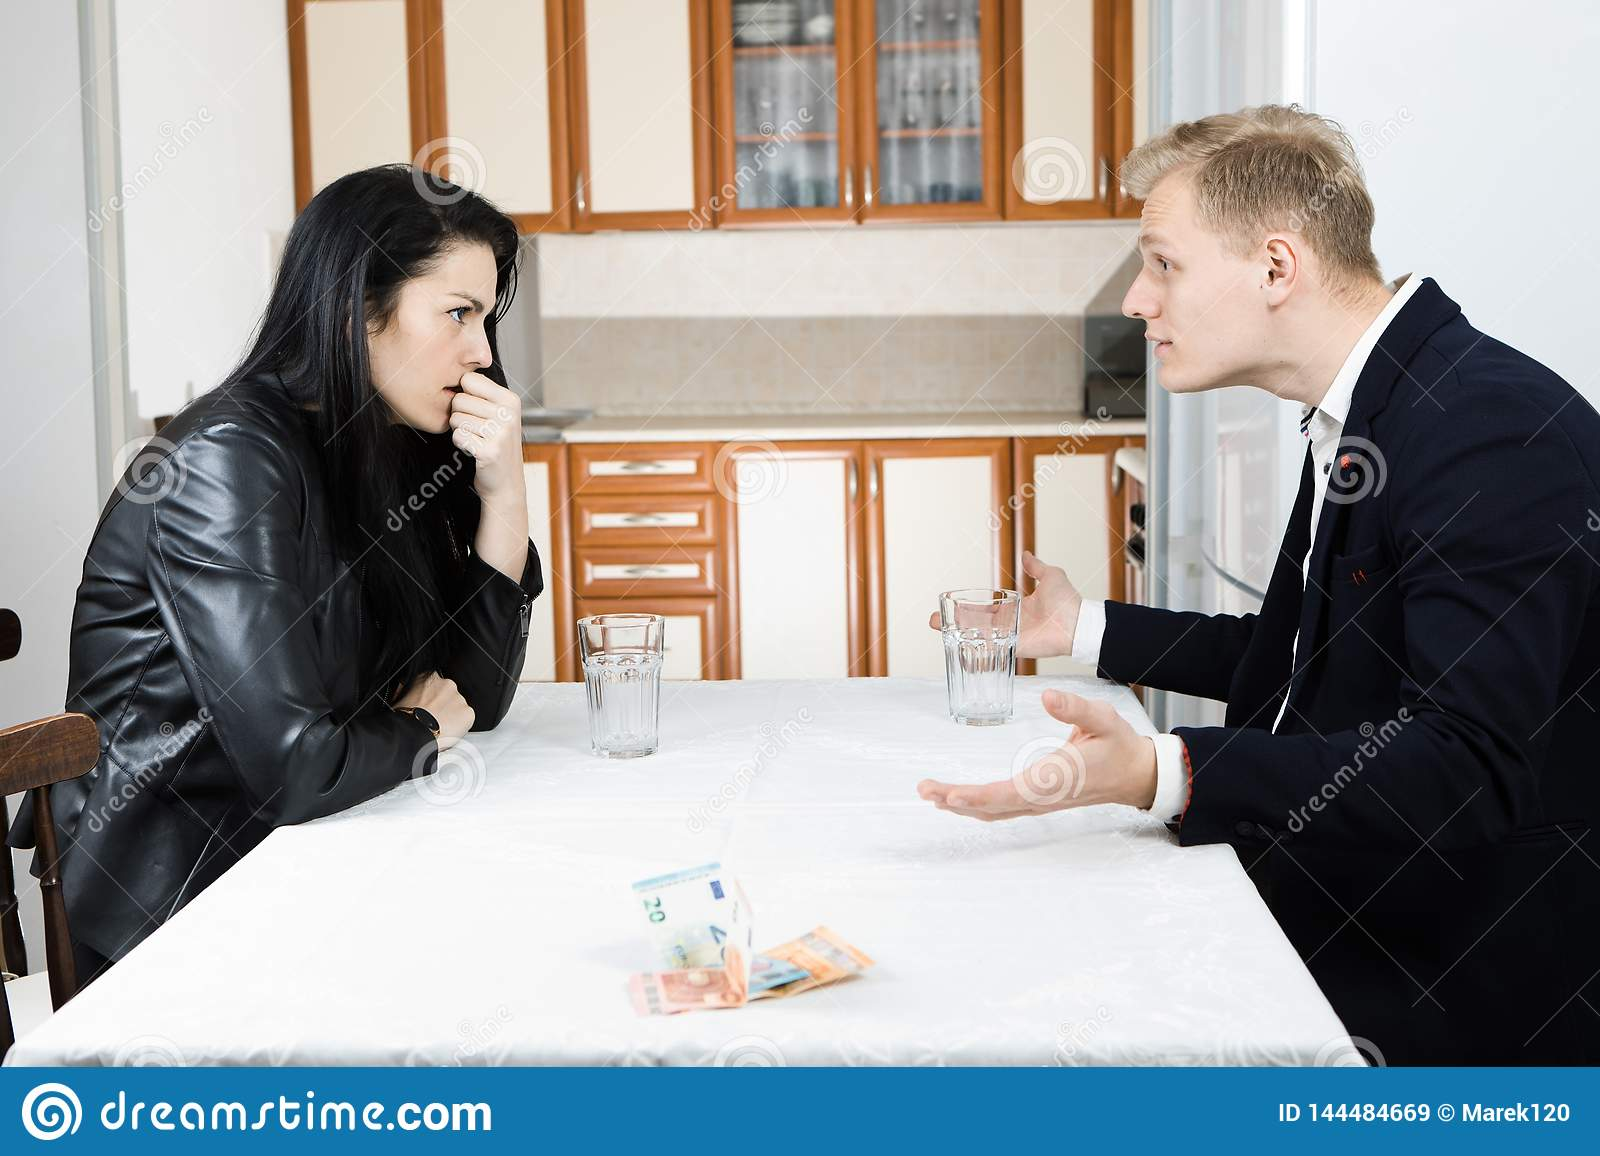 Couple solving financial crisis together on table in kitchen